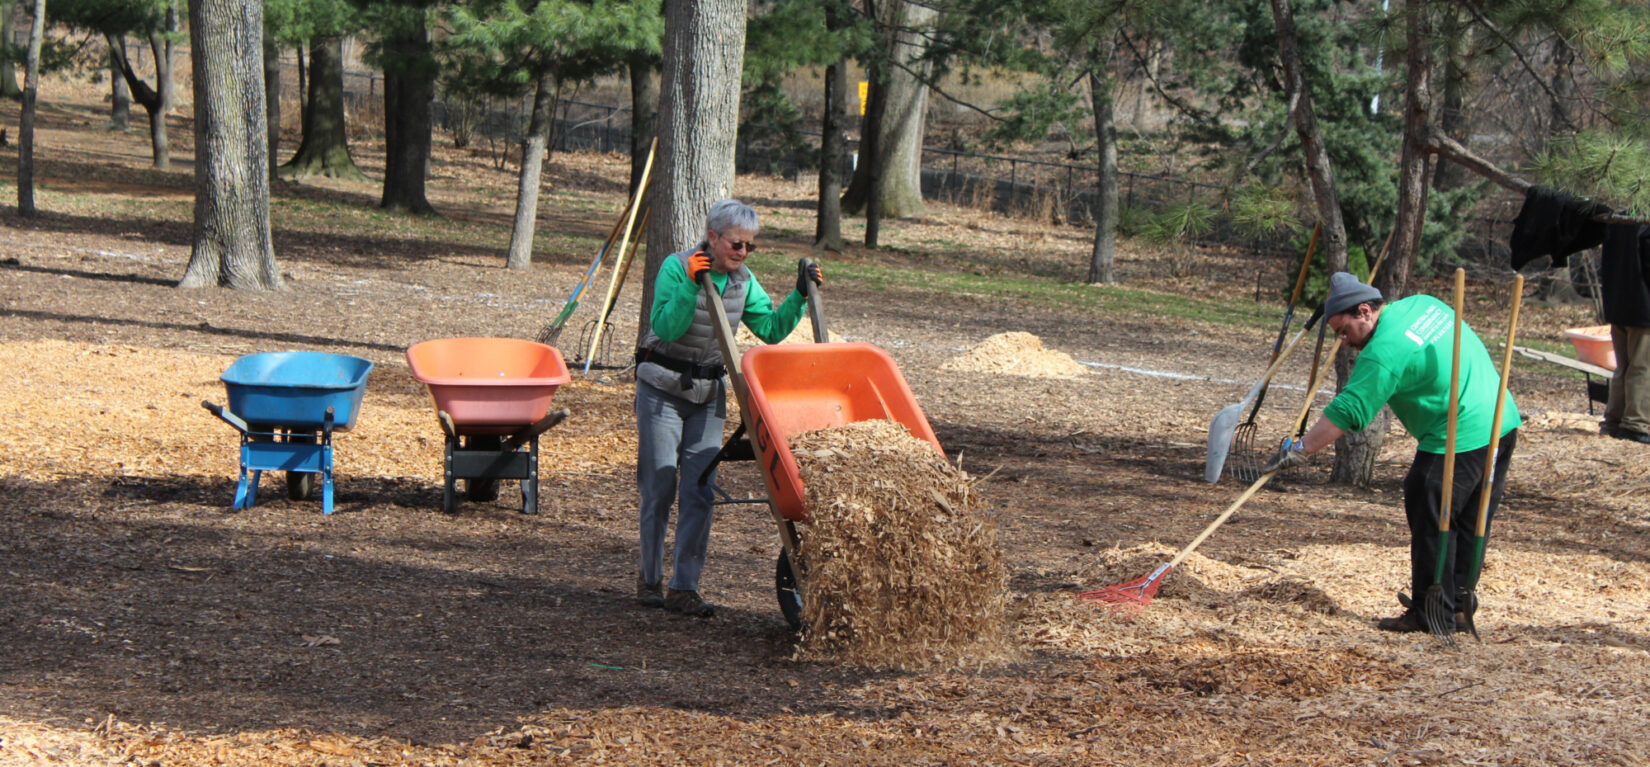 Volunteers with a wheelbarrow and a rake spread wood chips beneath the trees of the Pinetum